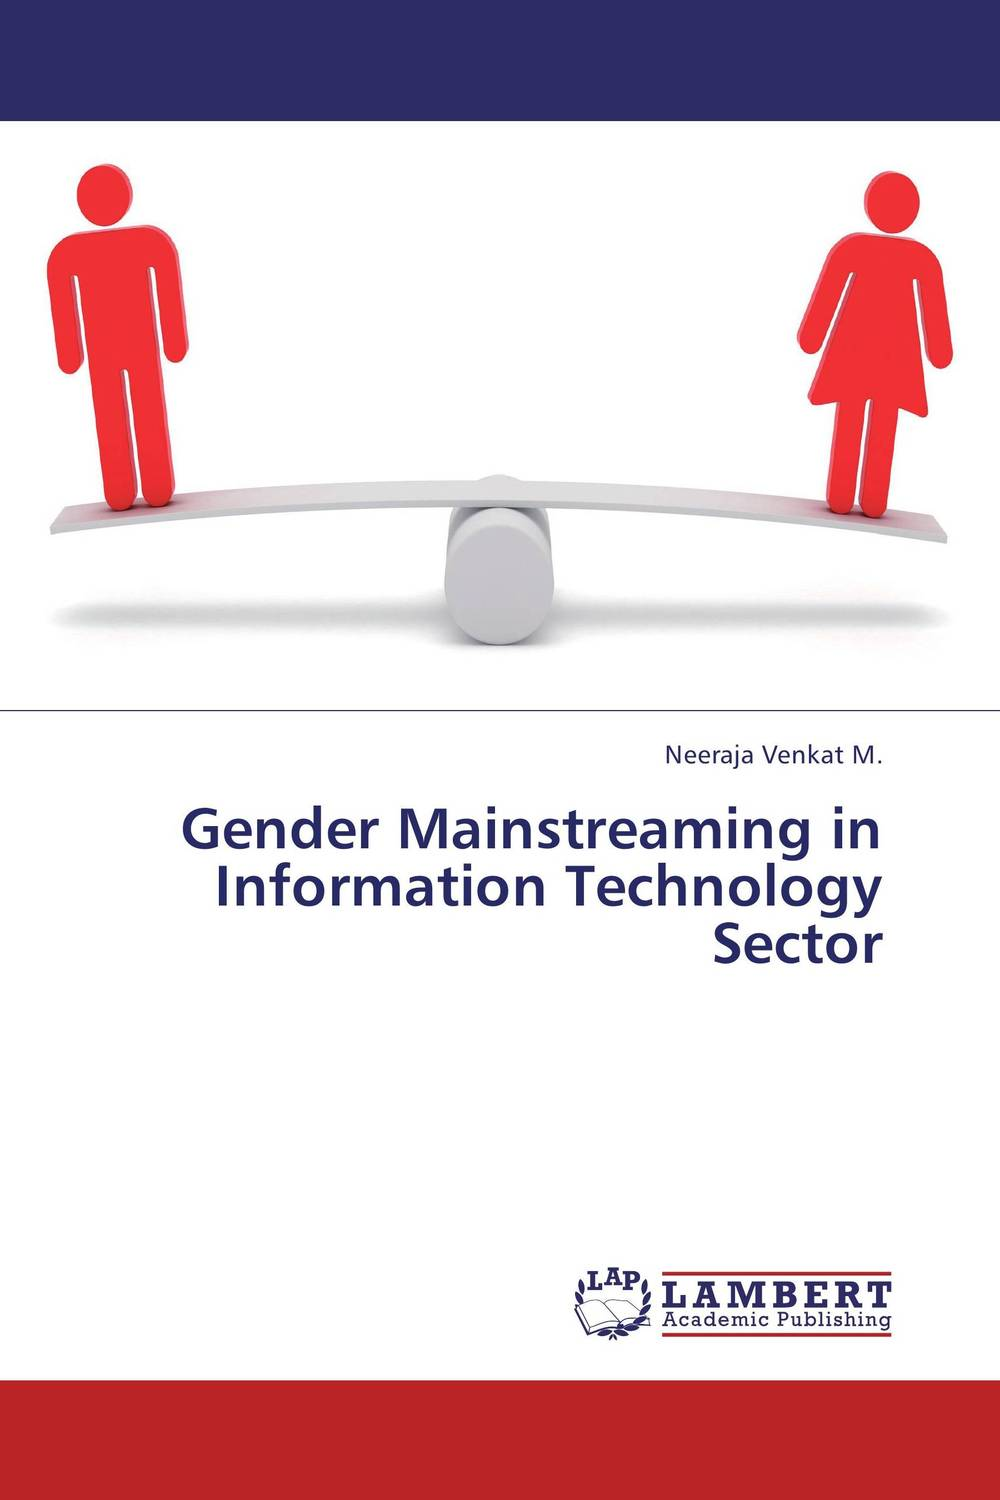 Gender Mainstreaming in Information Technology Sector